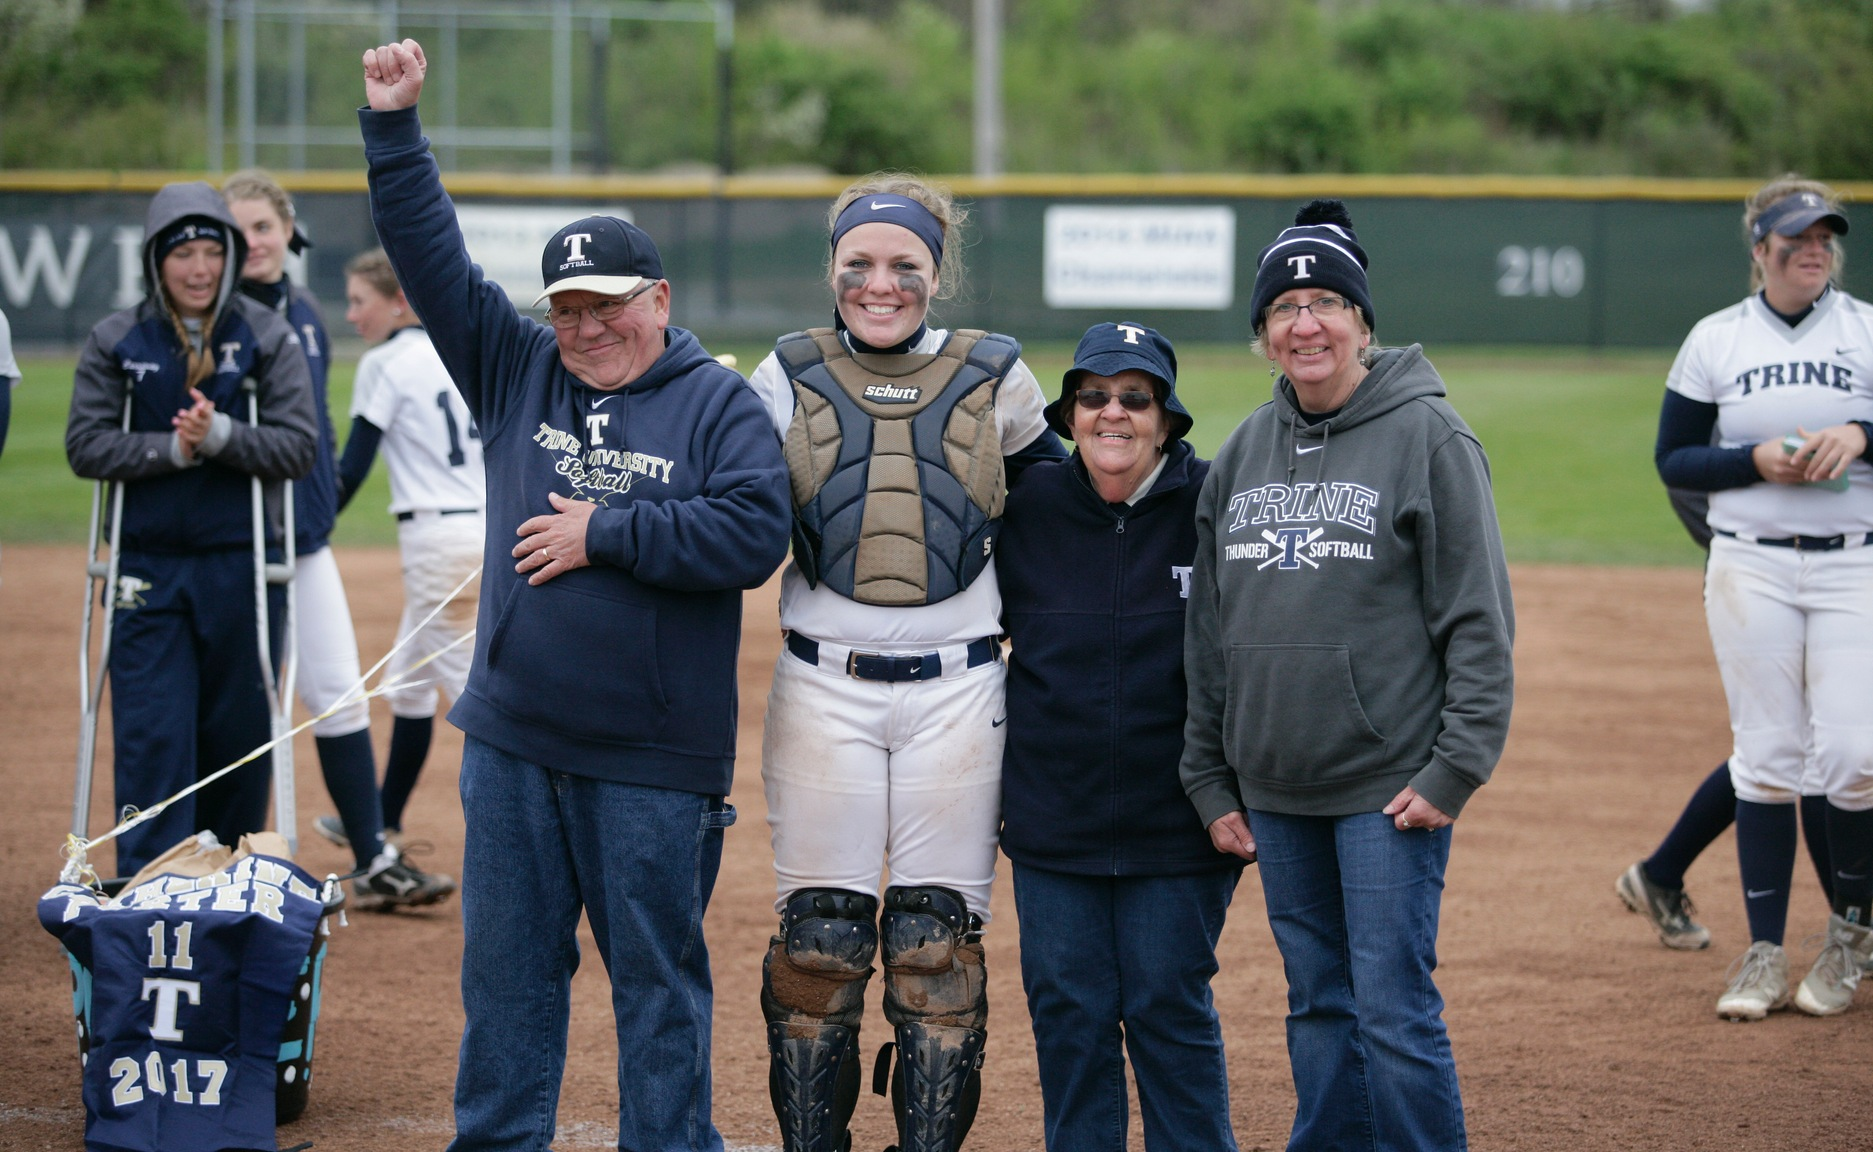 Fox Sets Home Run Record as Thunder Earn Sweep On Senior Day